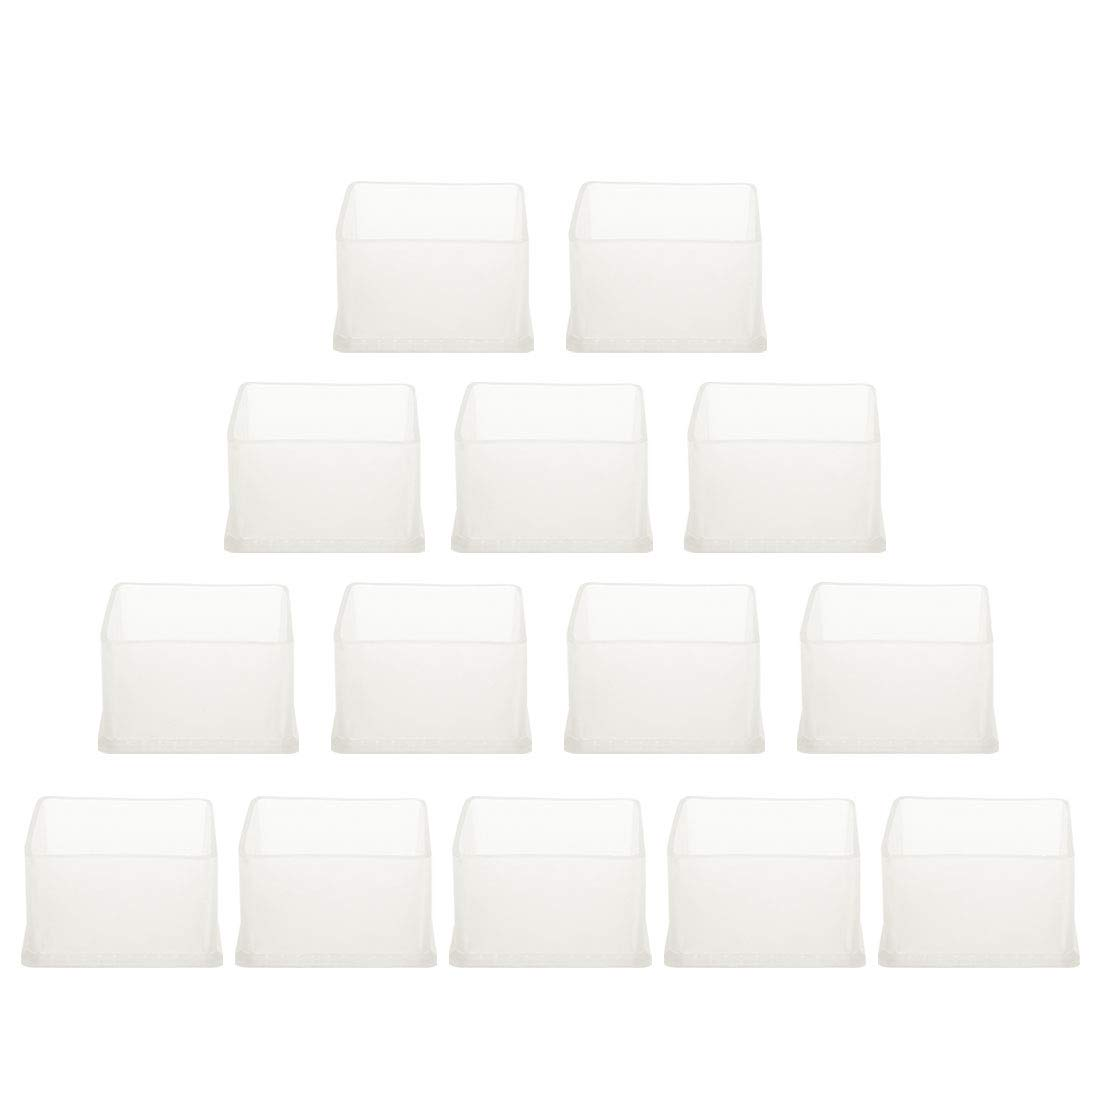 """uxcell Clear PVC Chair Leg Caps Desk Feet Cover Furniture Slider Floor Protector 14pcs 2.36"""" x 2.36"""" (60x60mm) Inner Size, Reduce Noise Anti Scratch"""